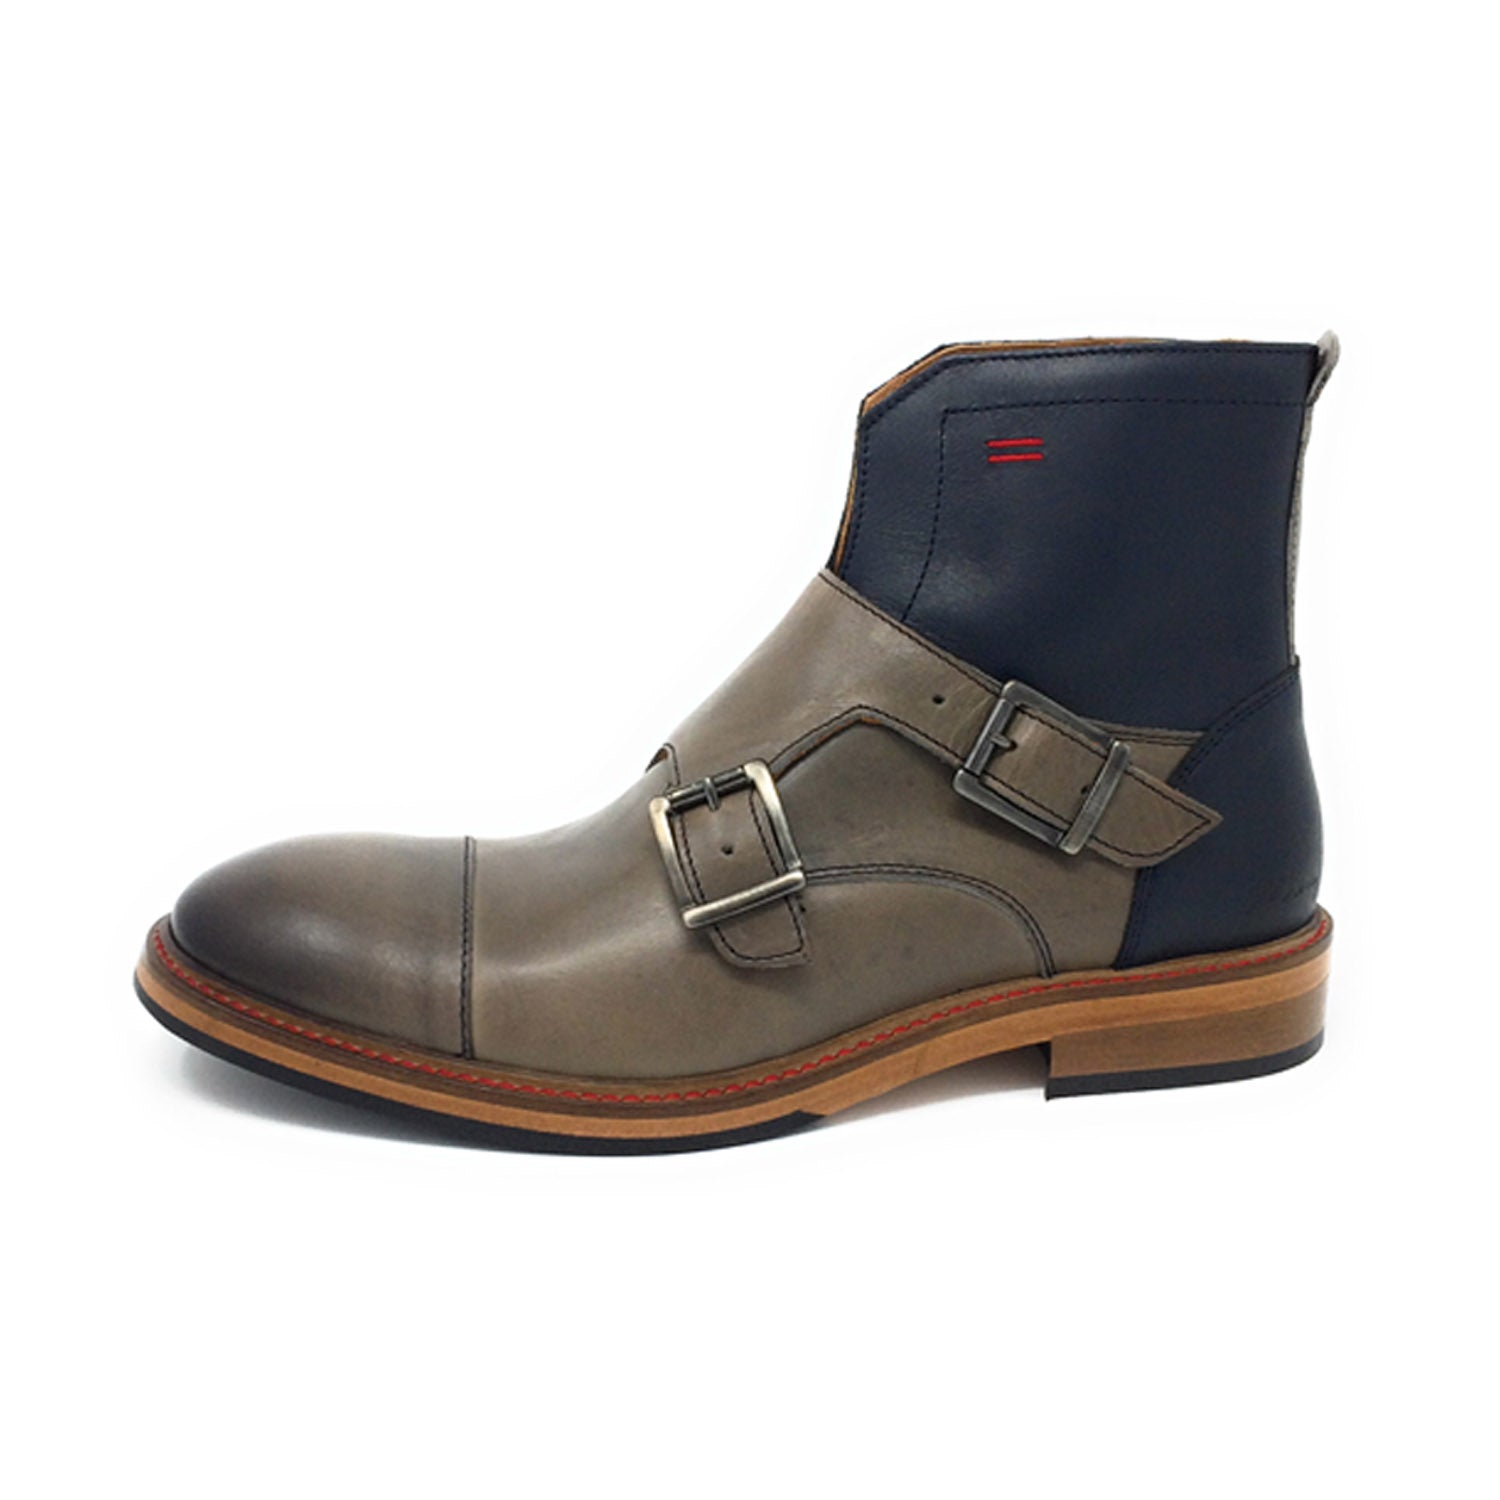 NiK Kacy Gender-Equal Gender-Neutral Luxury Monk Boots in Reverse Navy Blue and Grey Genuine Leather